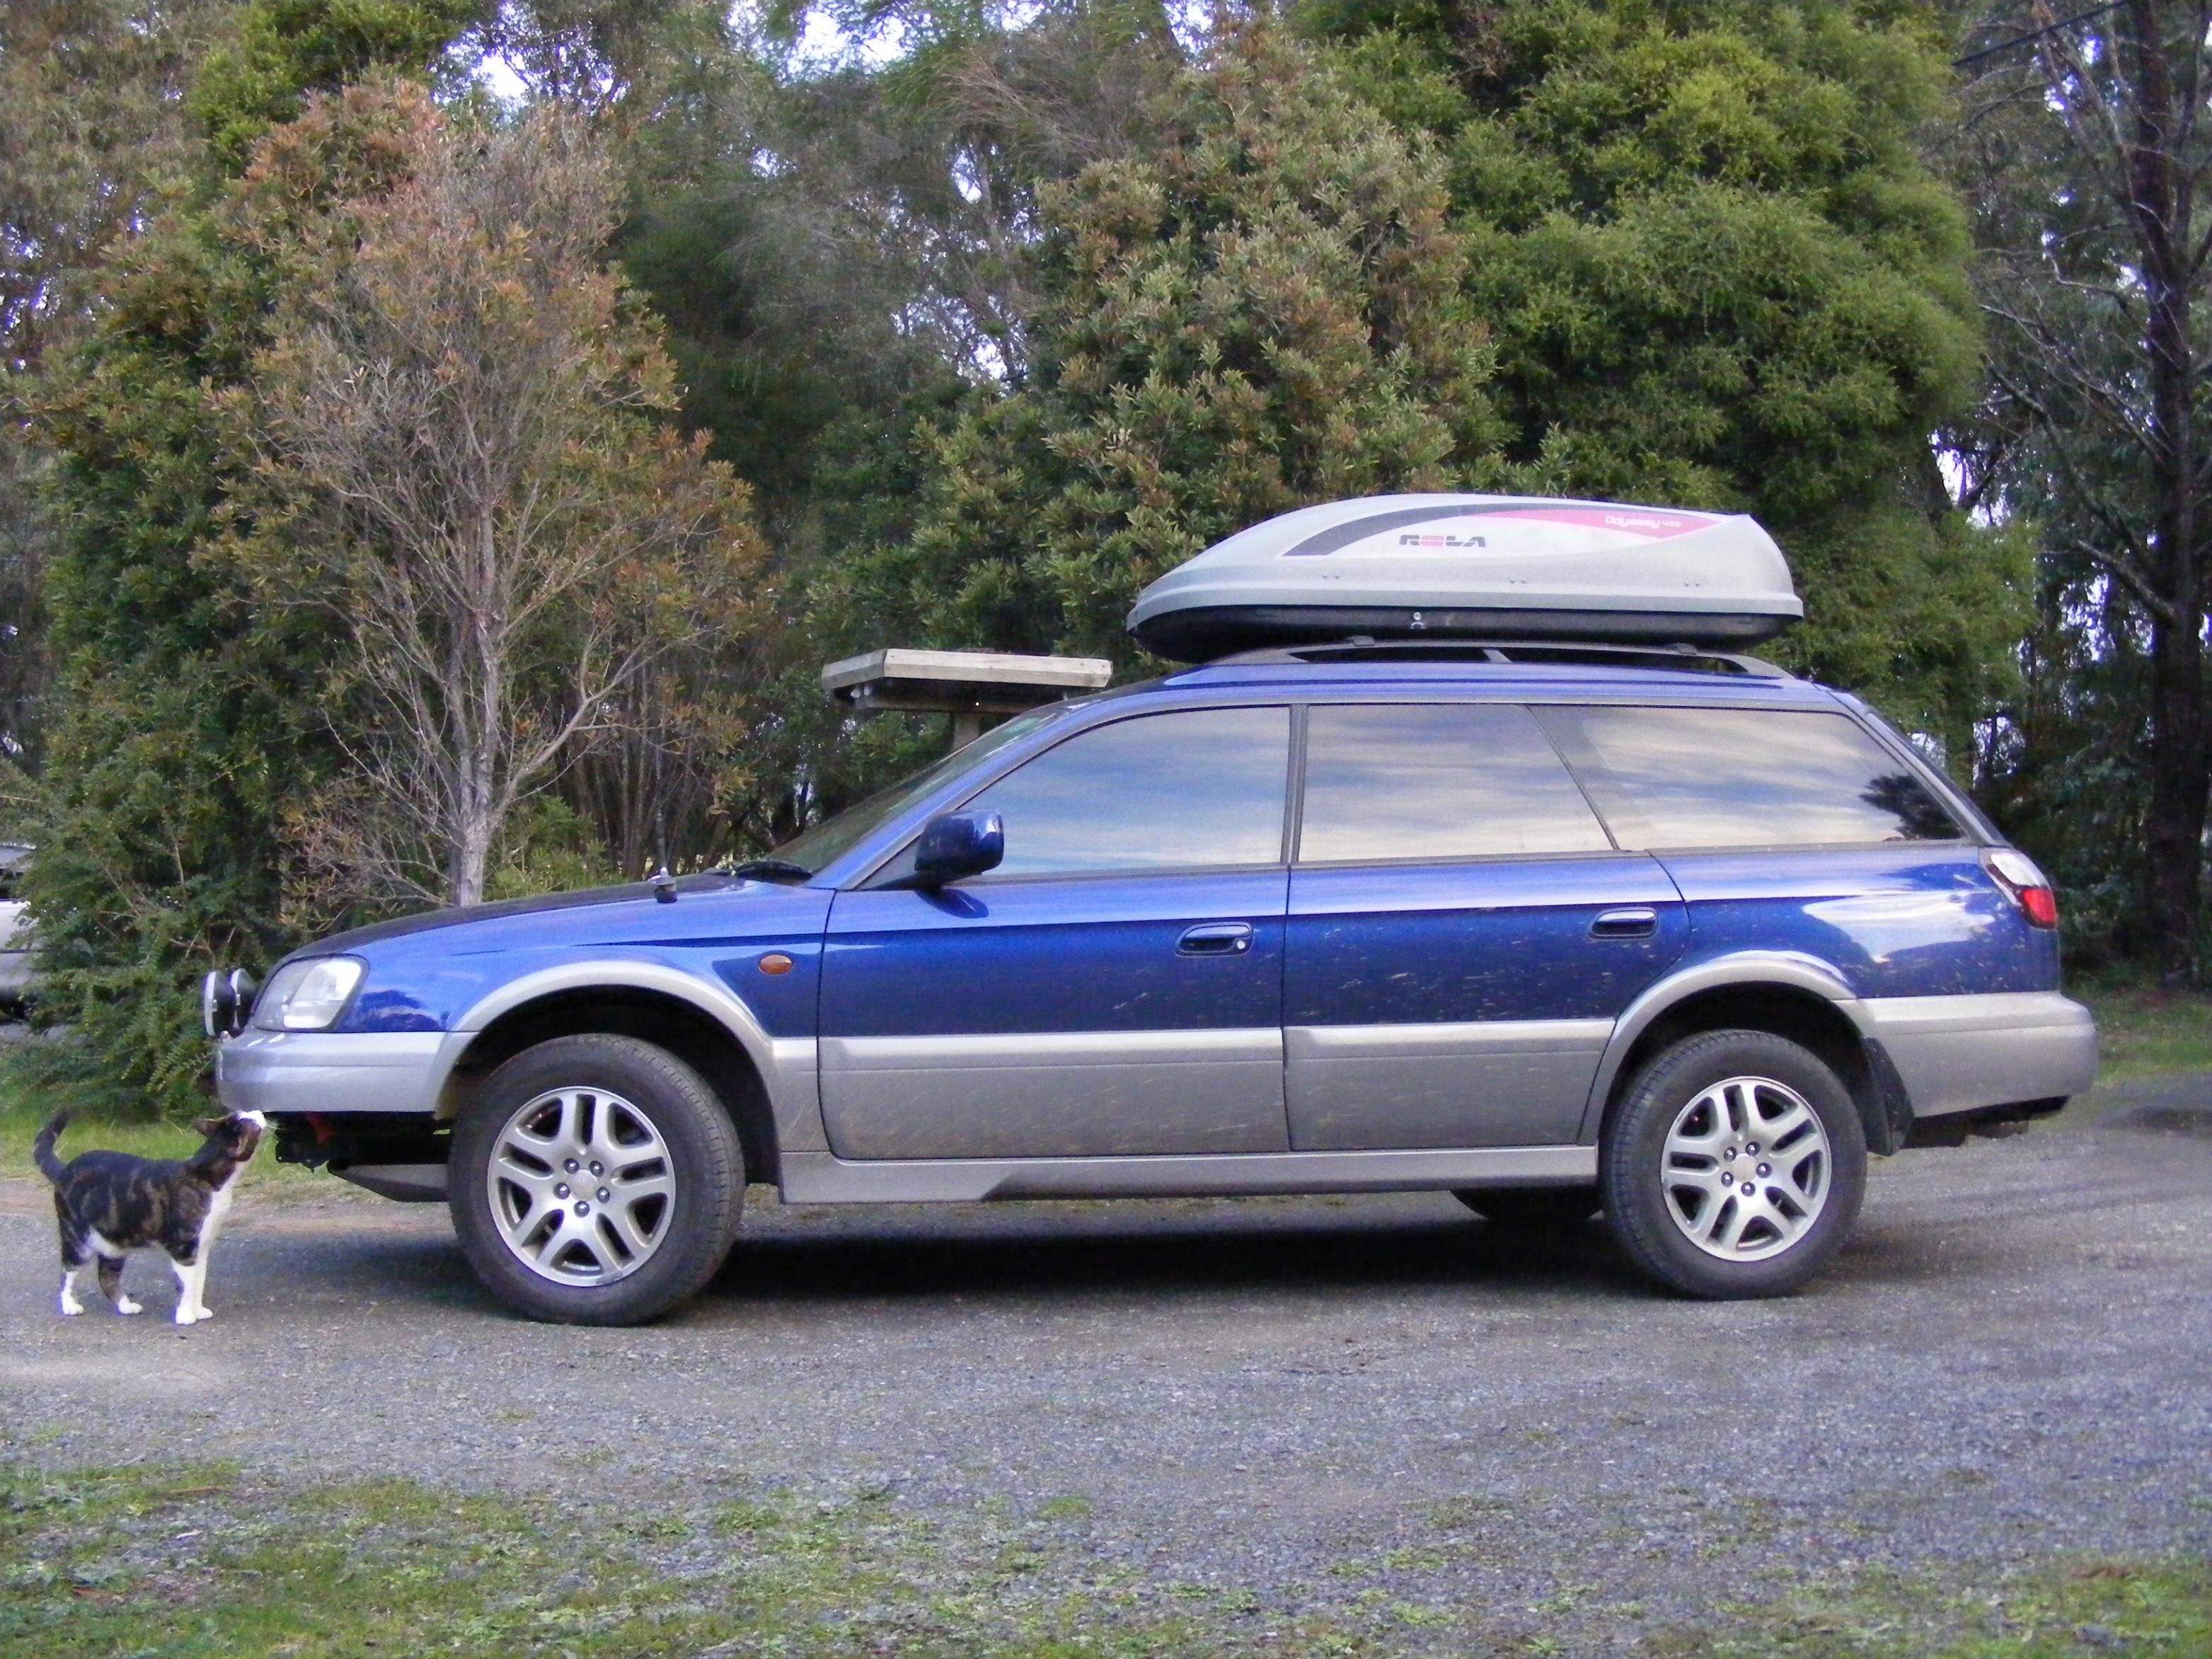 65 best lifted subies images on pinterest subaru outback dream legacy lift subaru google search subaru outbackgoogle search vanachro Image collections